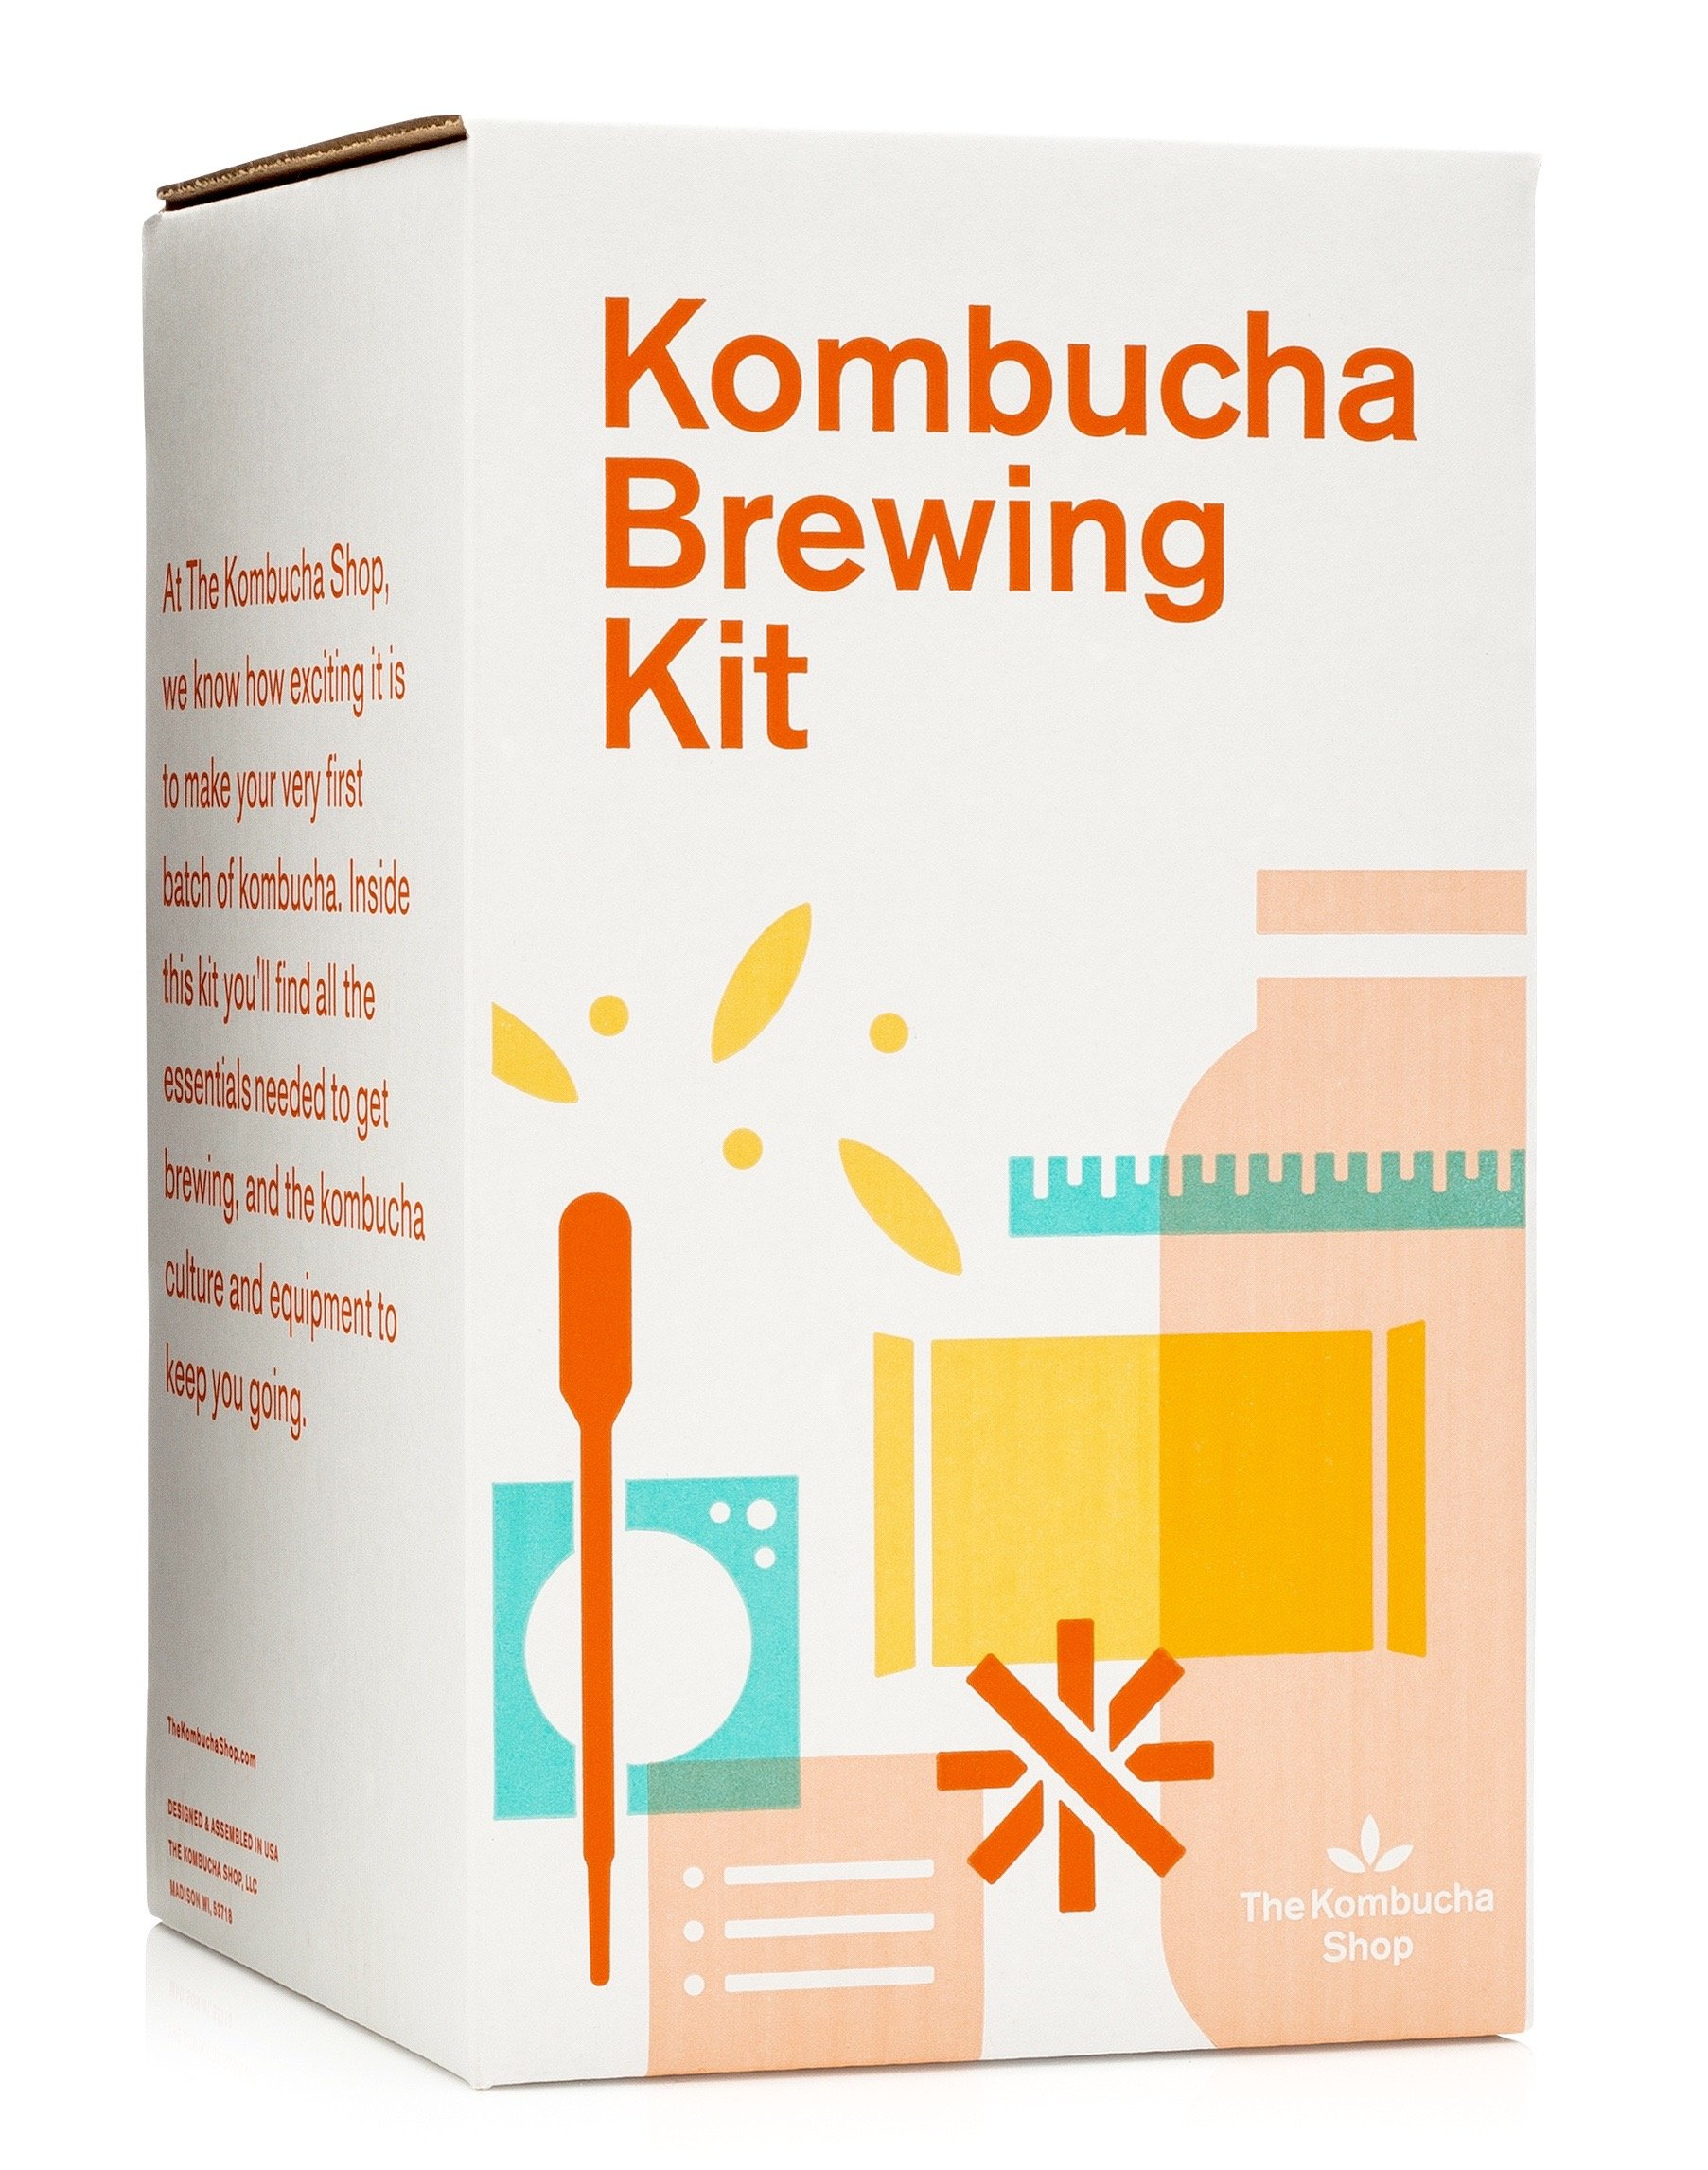 The Kombucha Shop Kombucha Brewing Kit with 1 Gallon Glass Brew Jar, Kombucha SCOBY and Starter Pouch, Temperature Gauge, pH Strips, Loose Leaf Tea and More by The Kombucha Shop